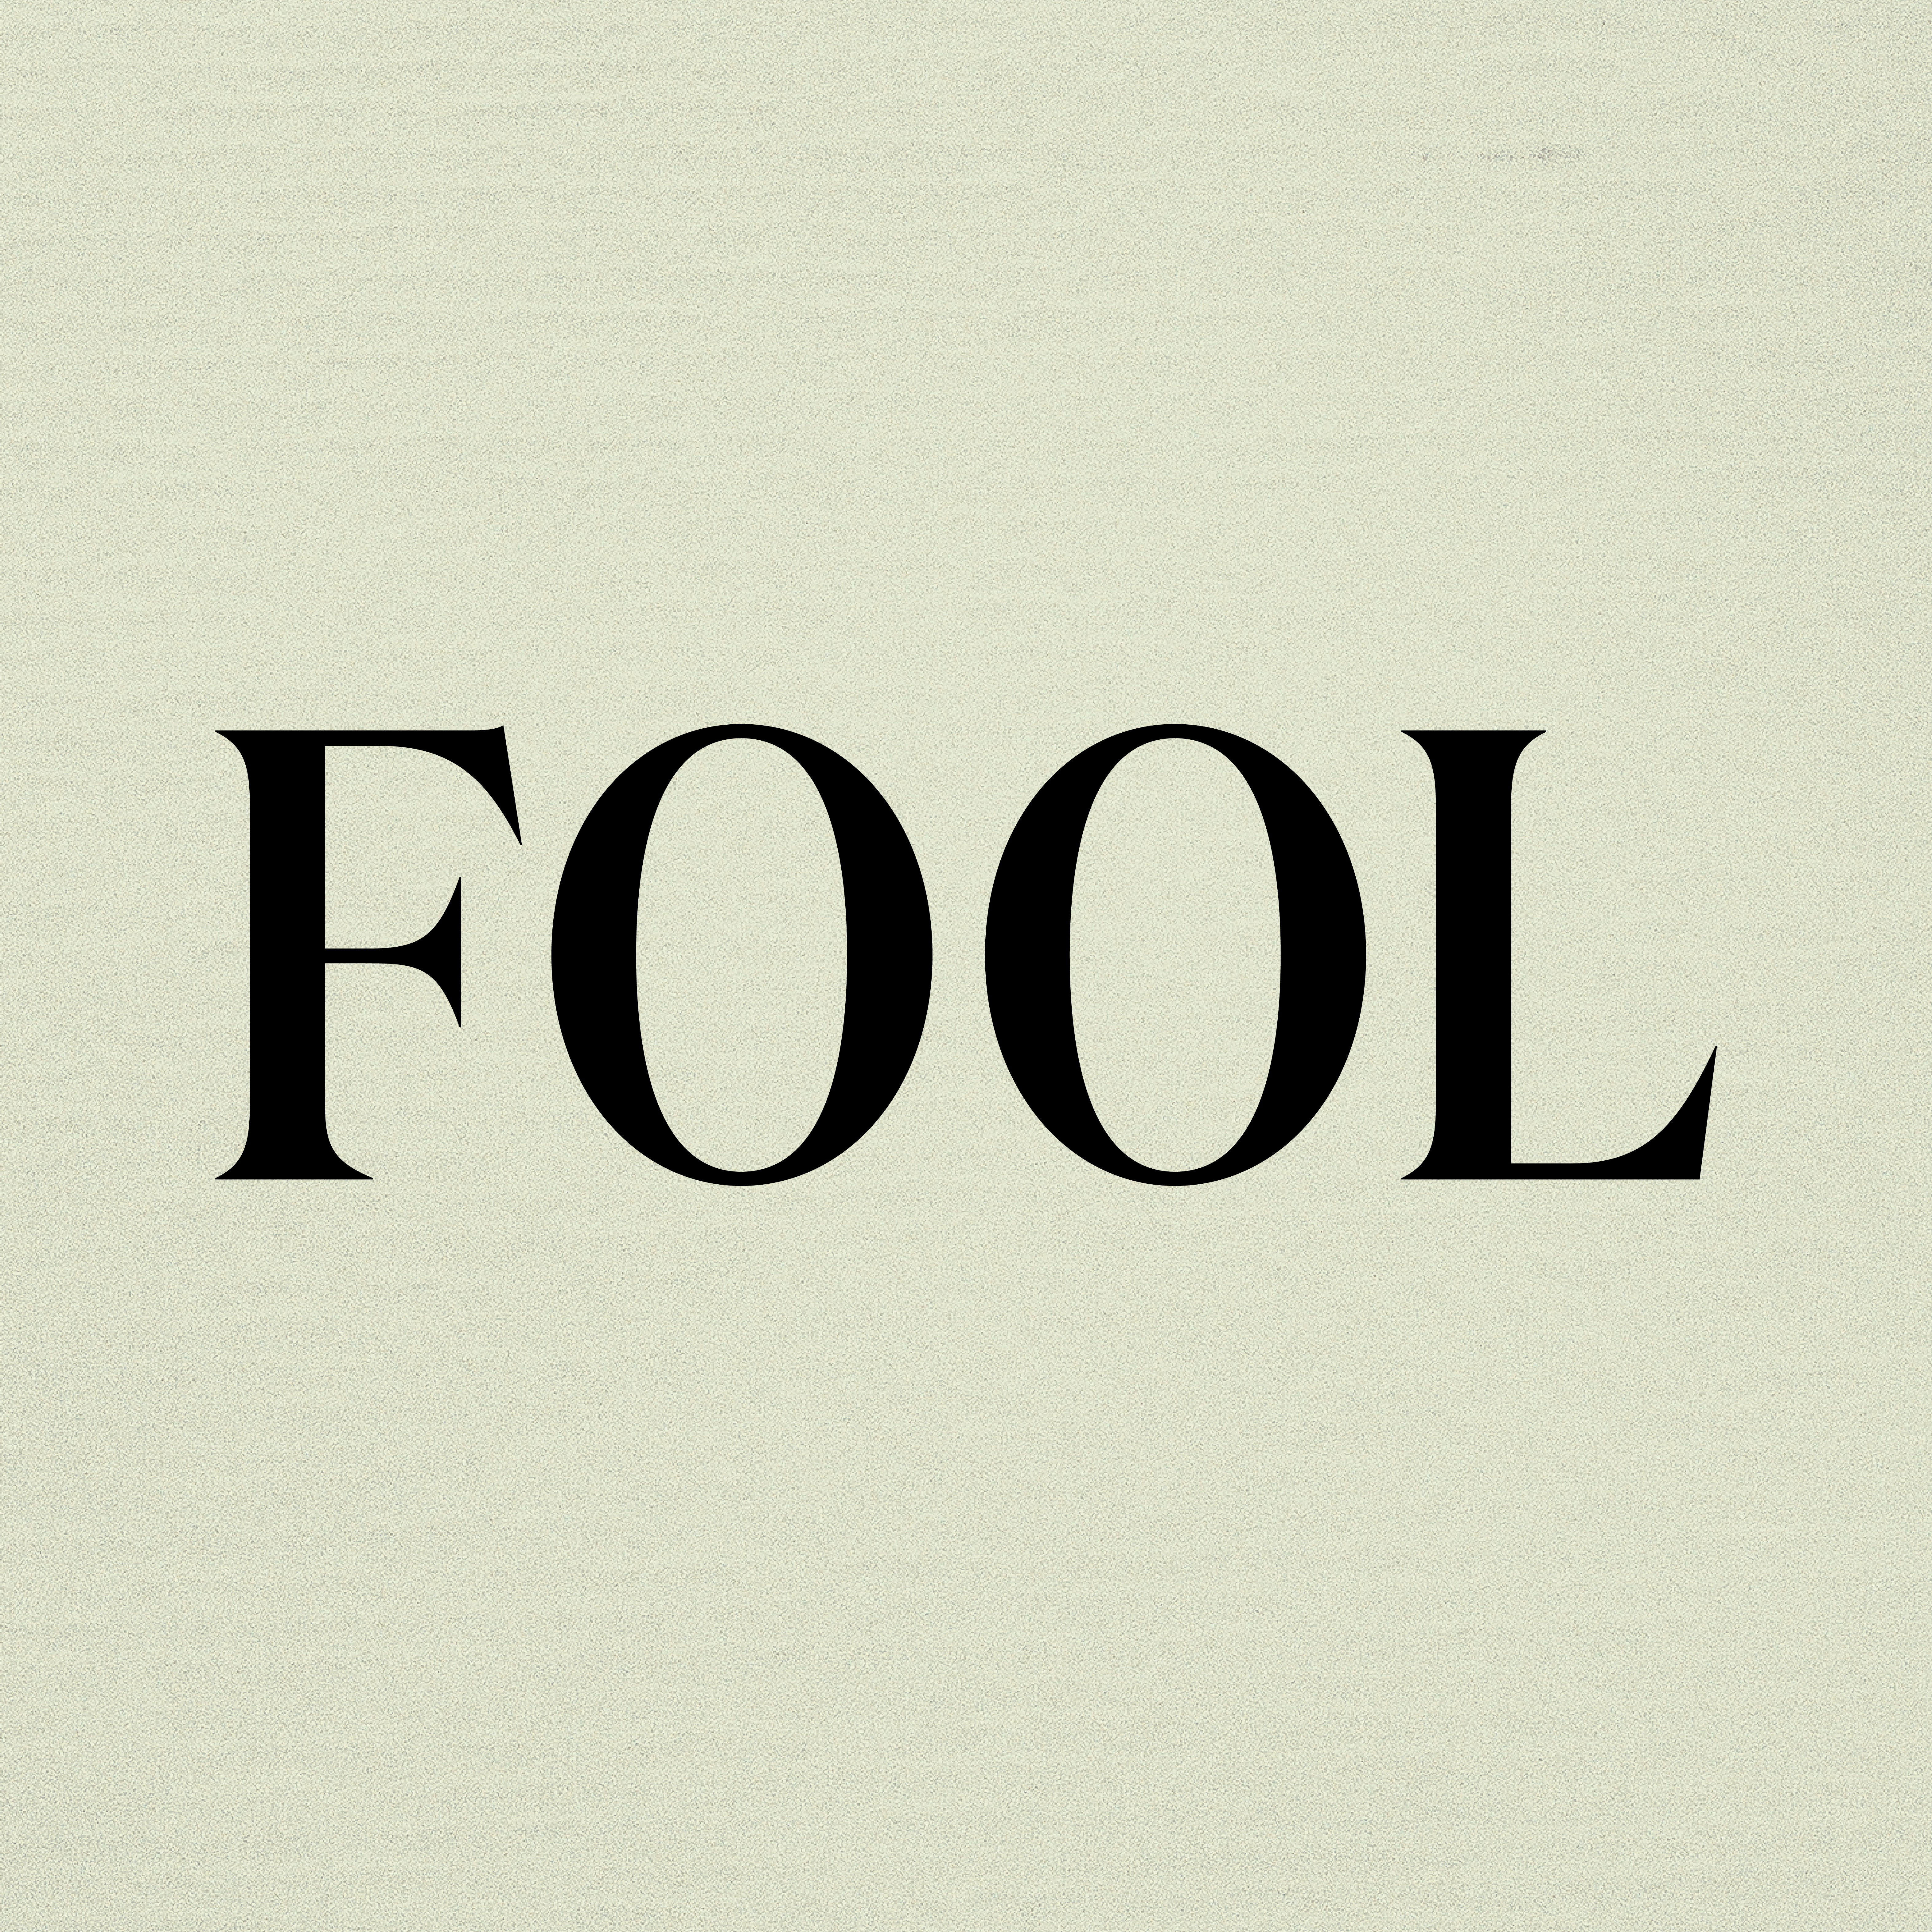 fool-profile_picture-01-34.png